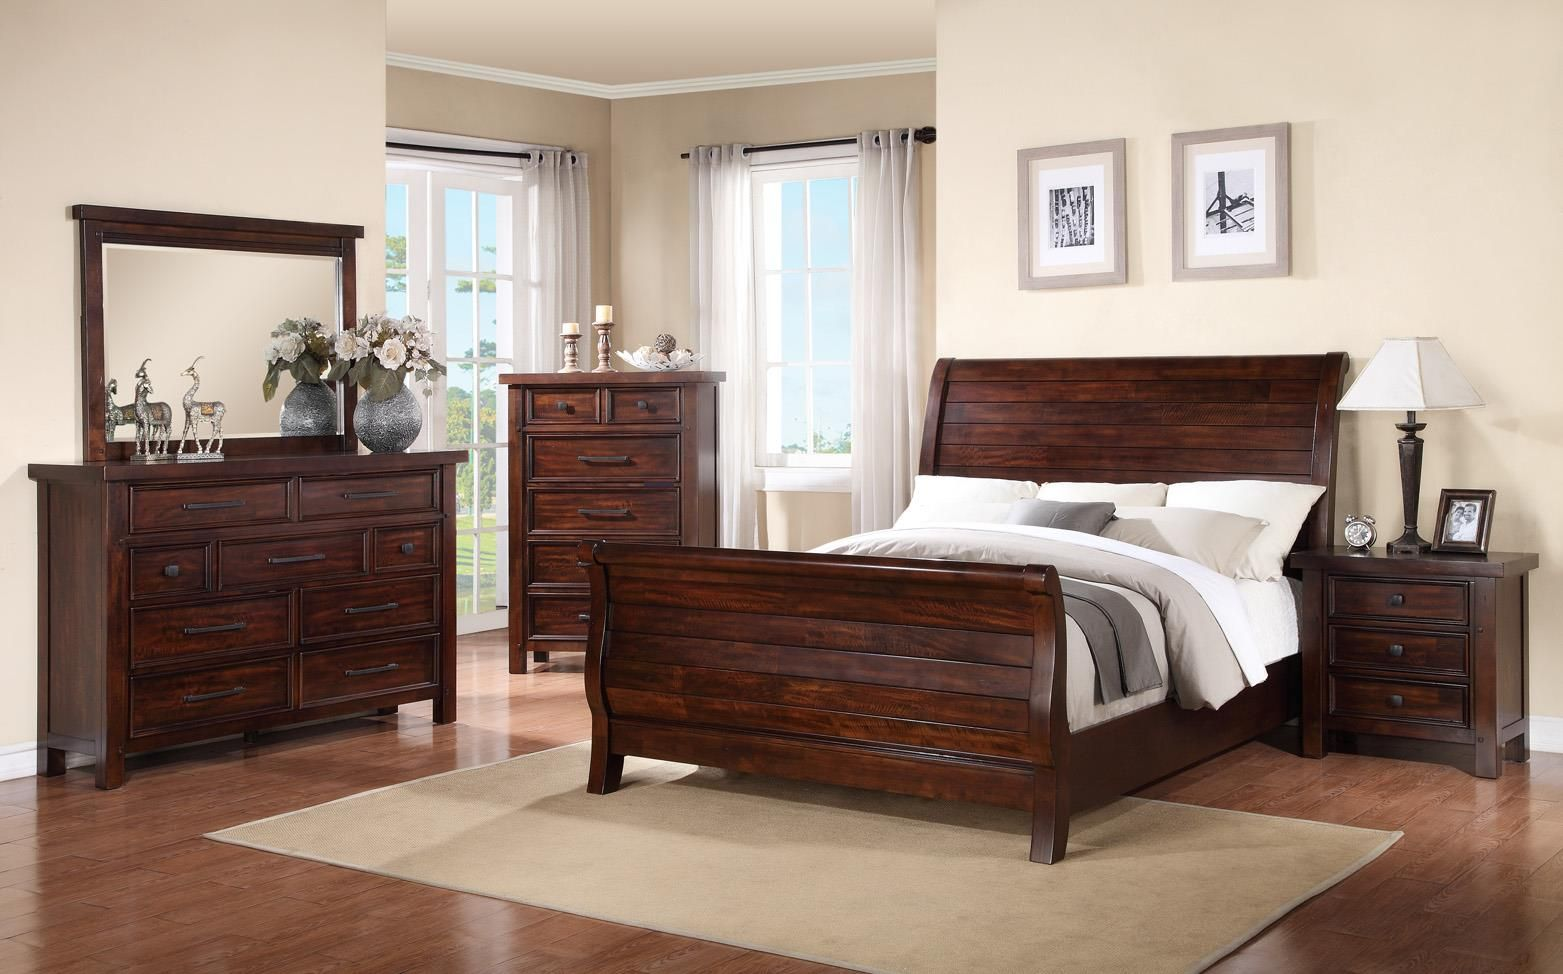 sonoma queen bedroom group by holland house holland house